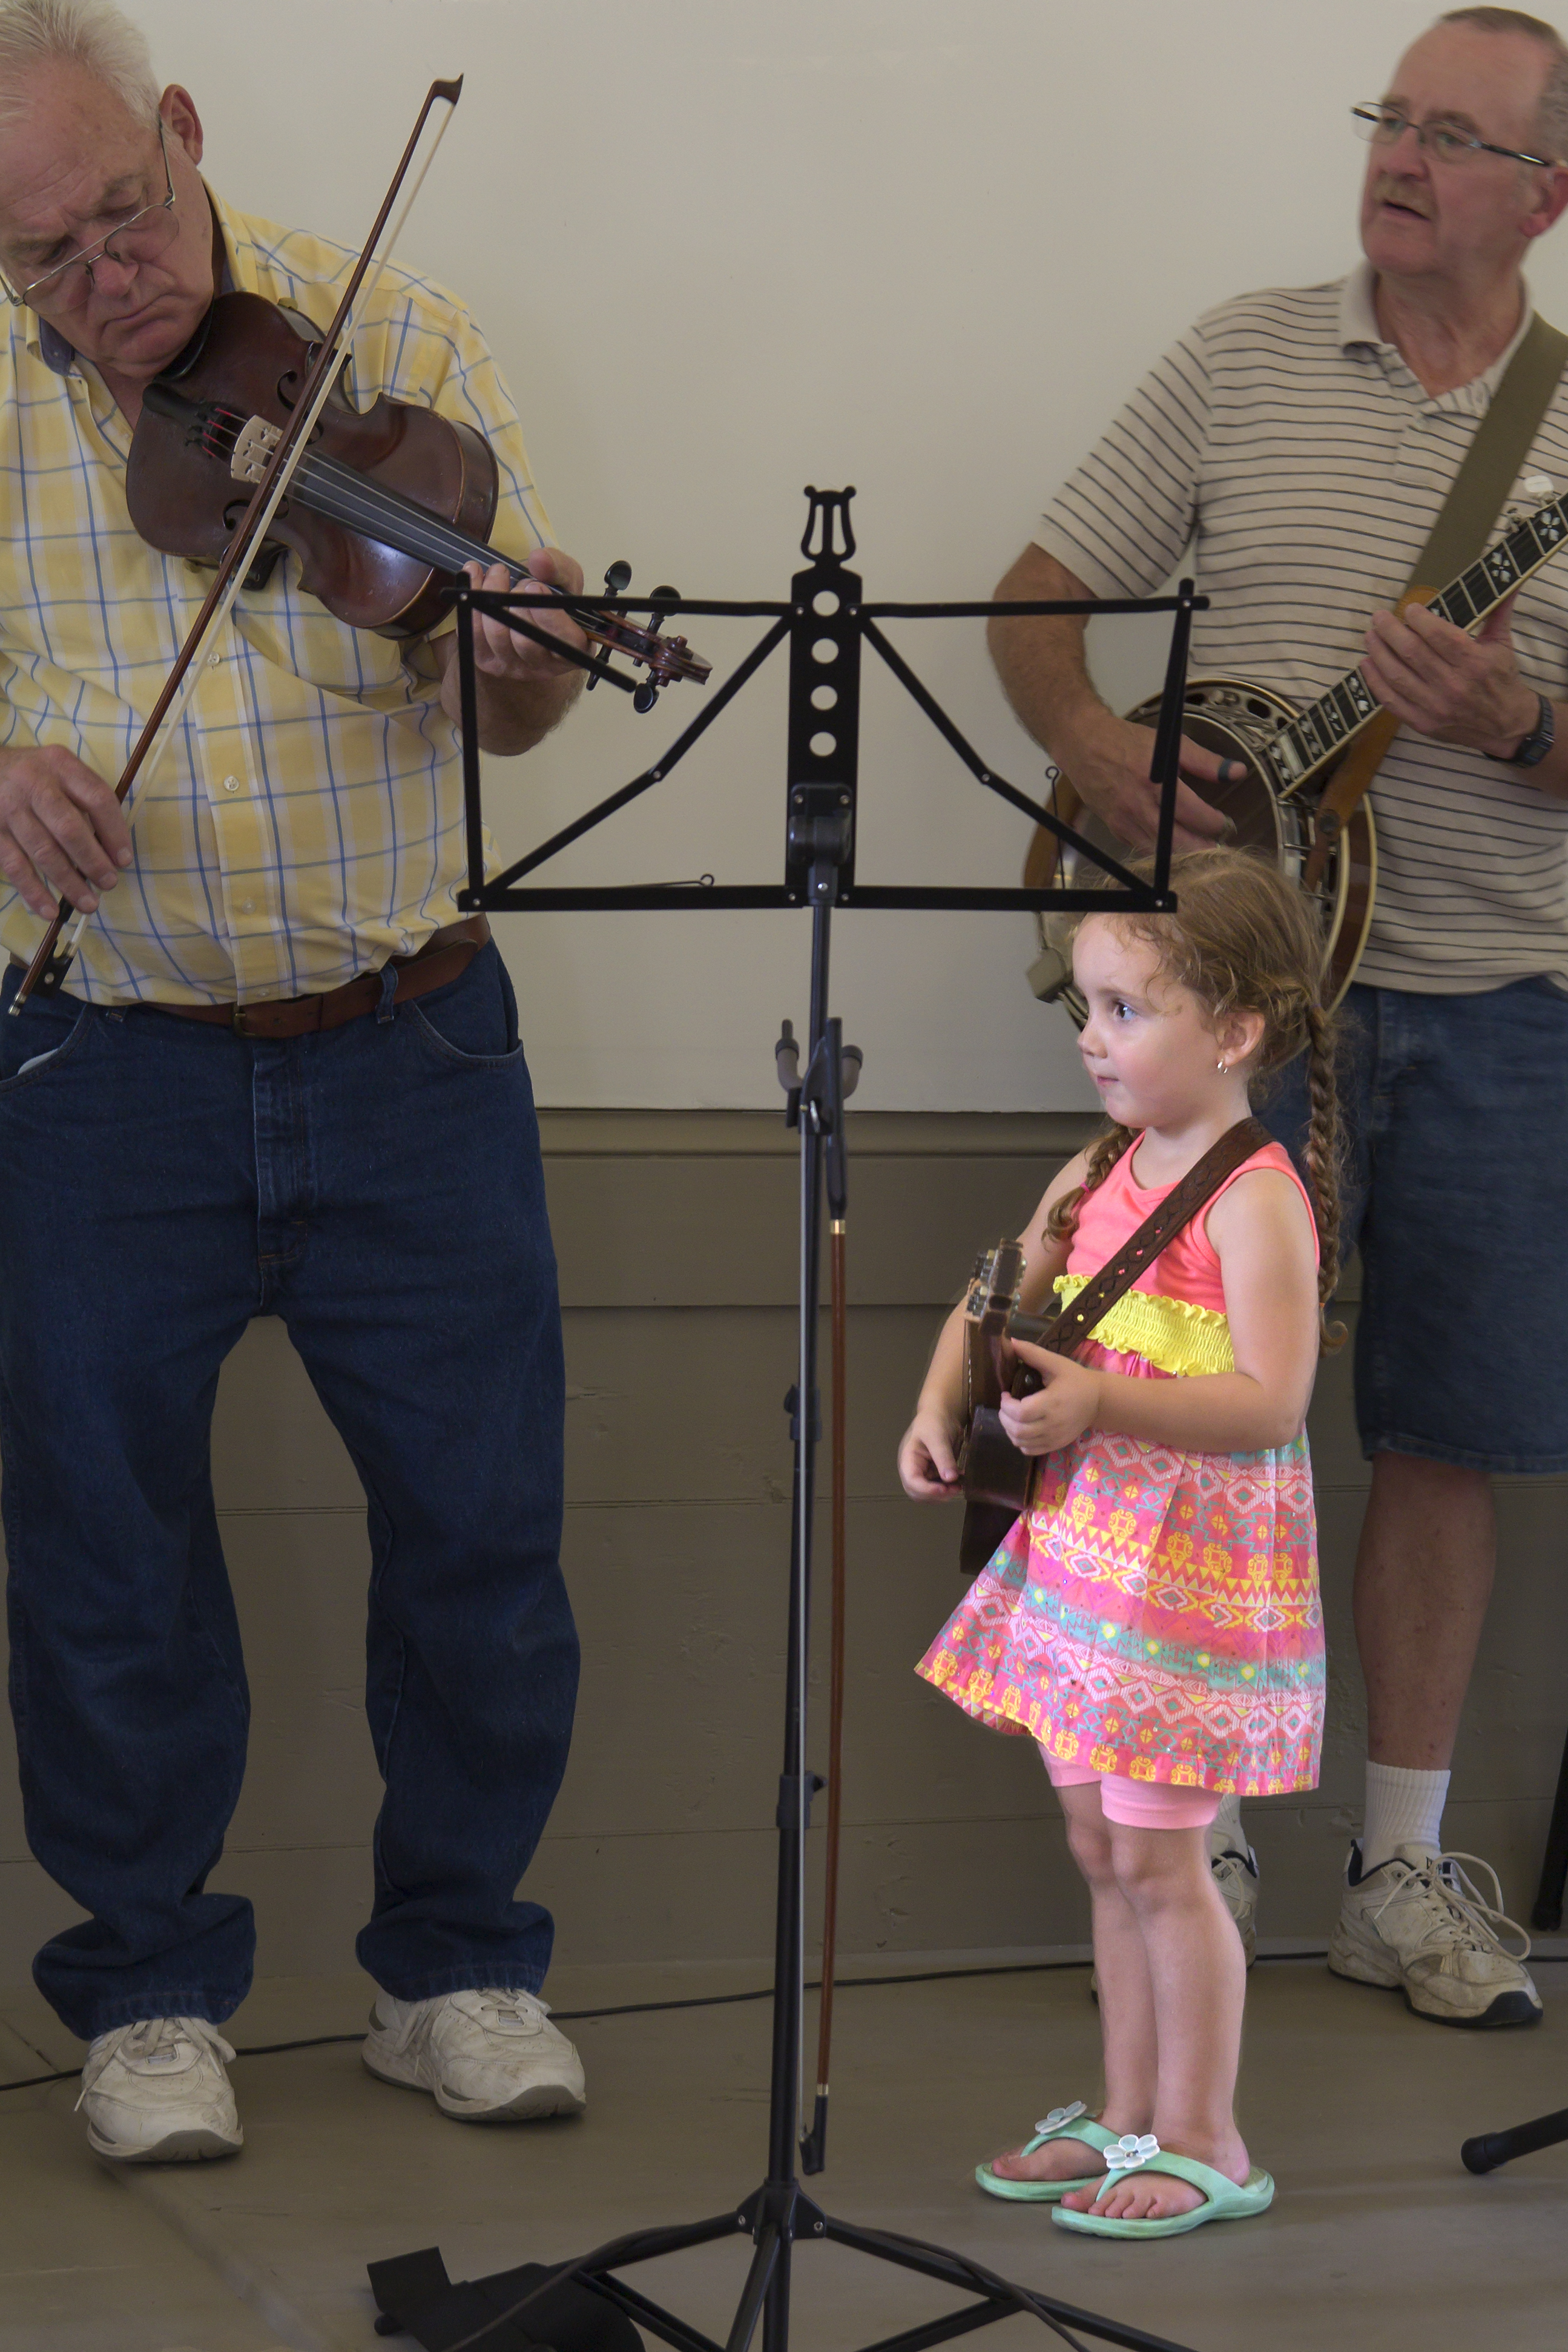 Photo; James Aaron,granddaughter, and musician; 8-2016 Pickin' Party at Neilltown Church Building